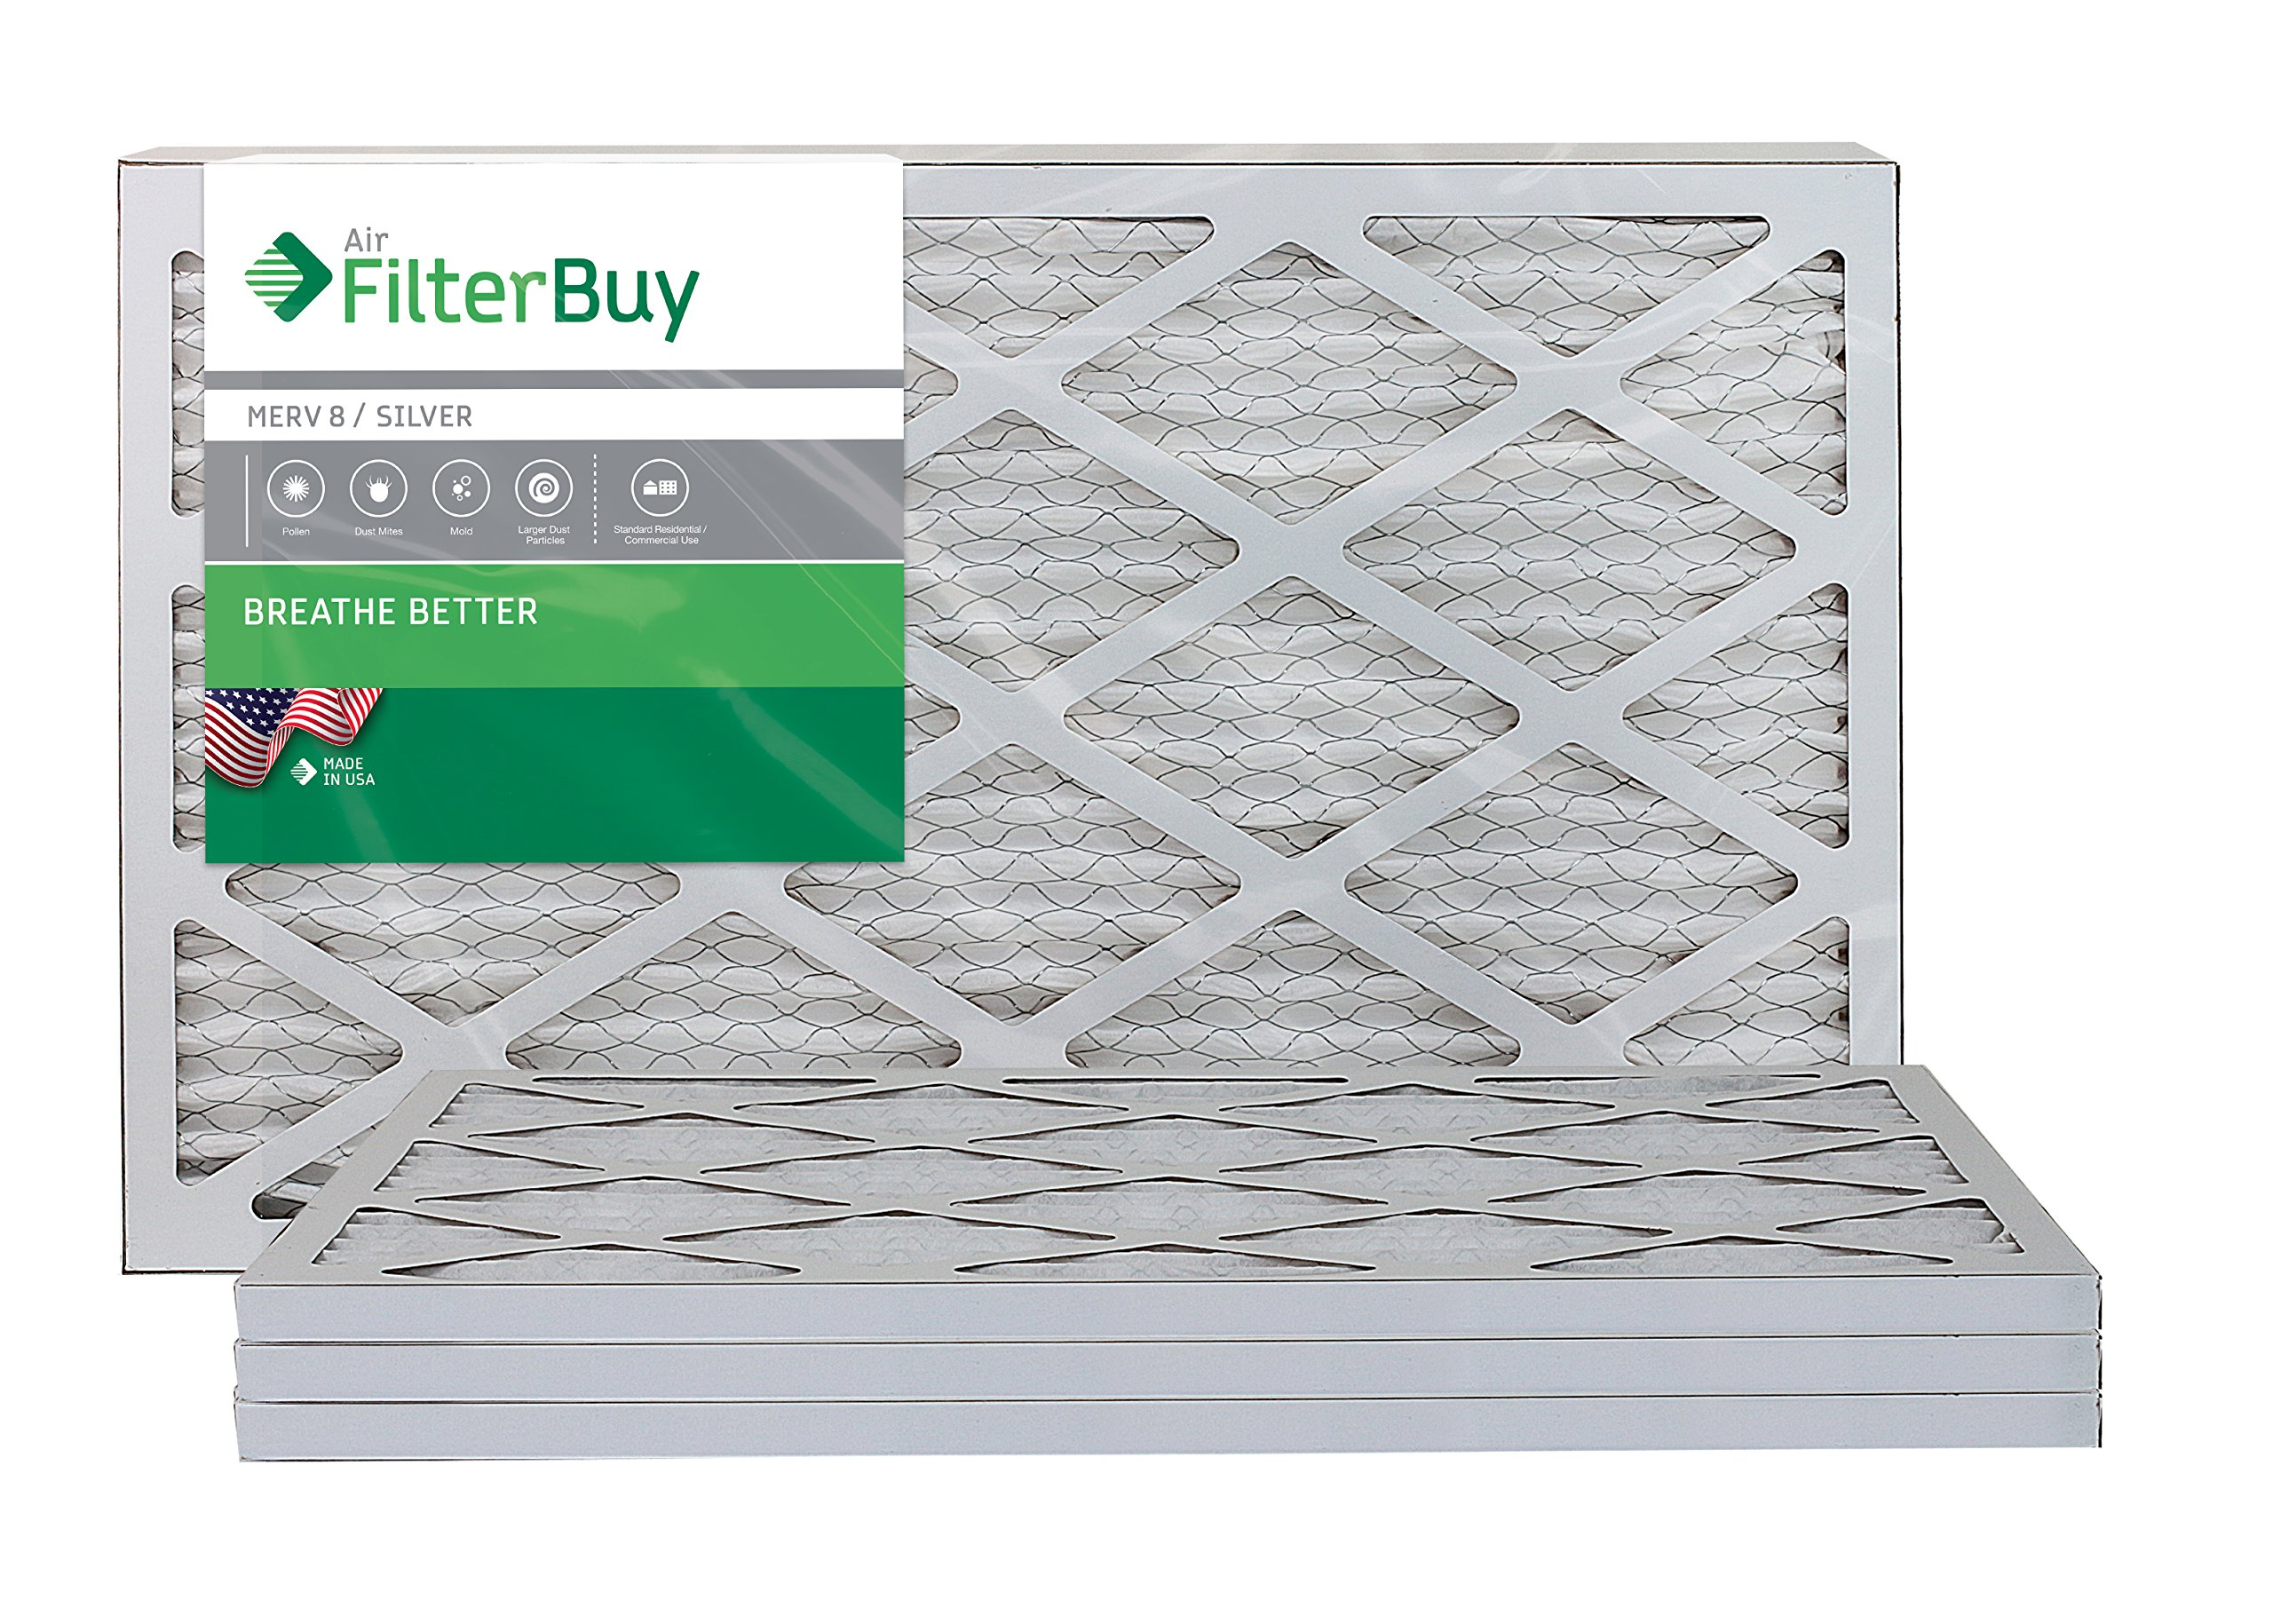 AFB Silver MERV 8 10x25x1 Pleated AC Furnace Air Filter. Pack of 4 Filters. 100% produced in the USA.